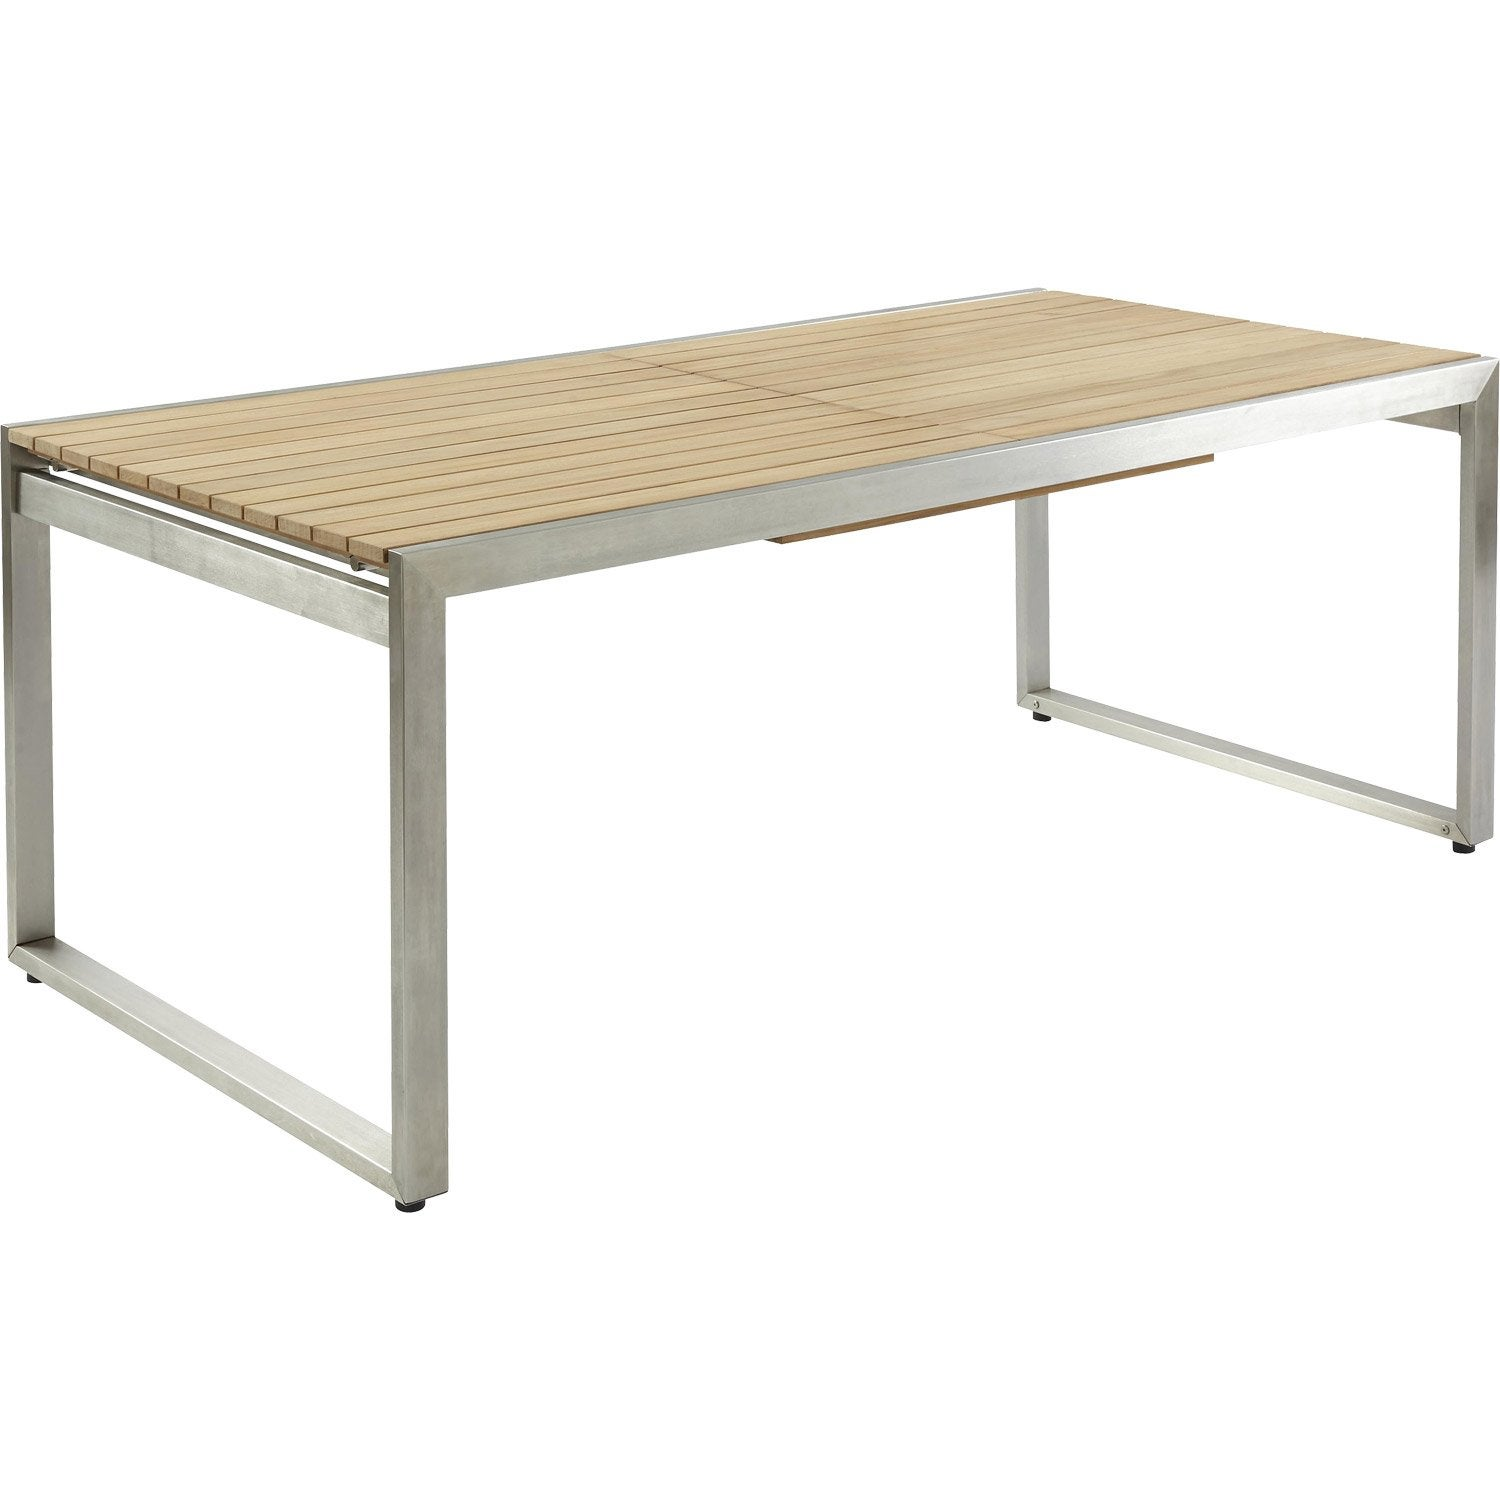 Salon de jardin leroy merlin en teck - Ikea table rectangulaire ...